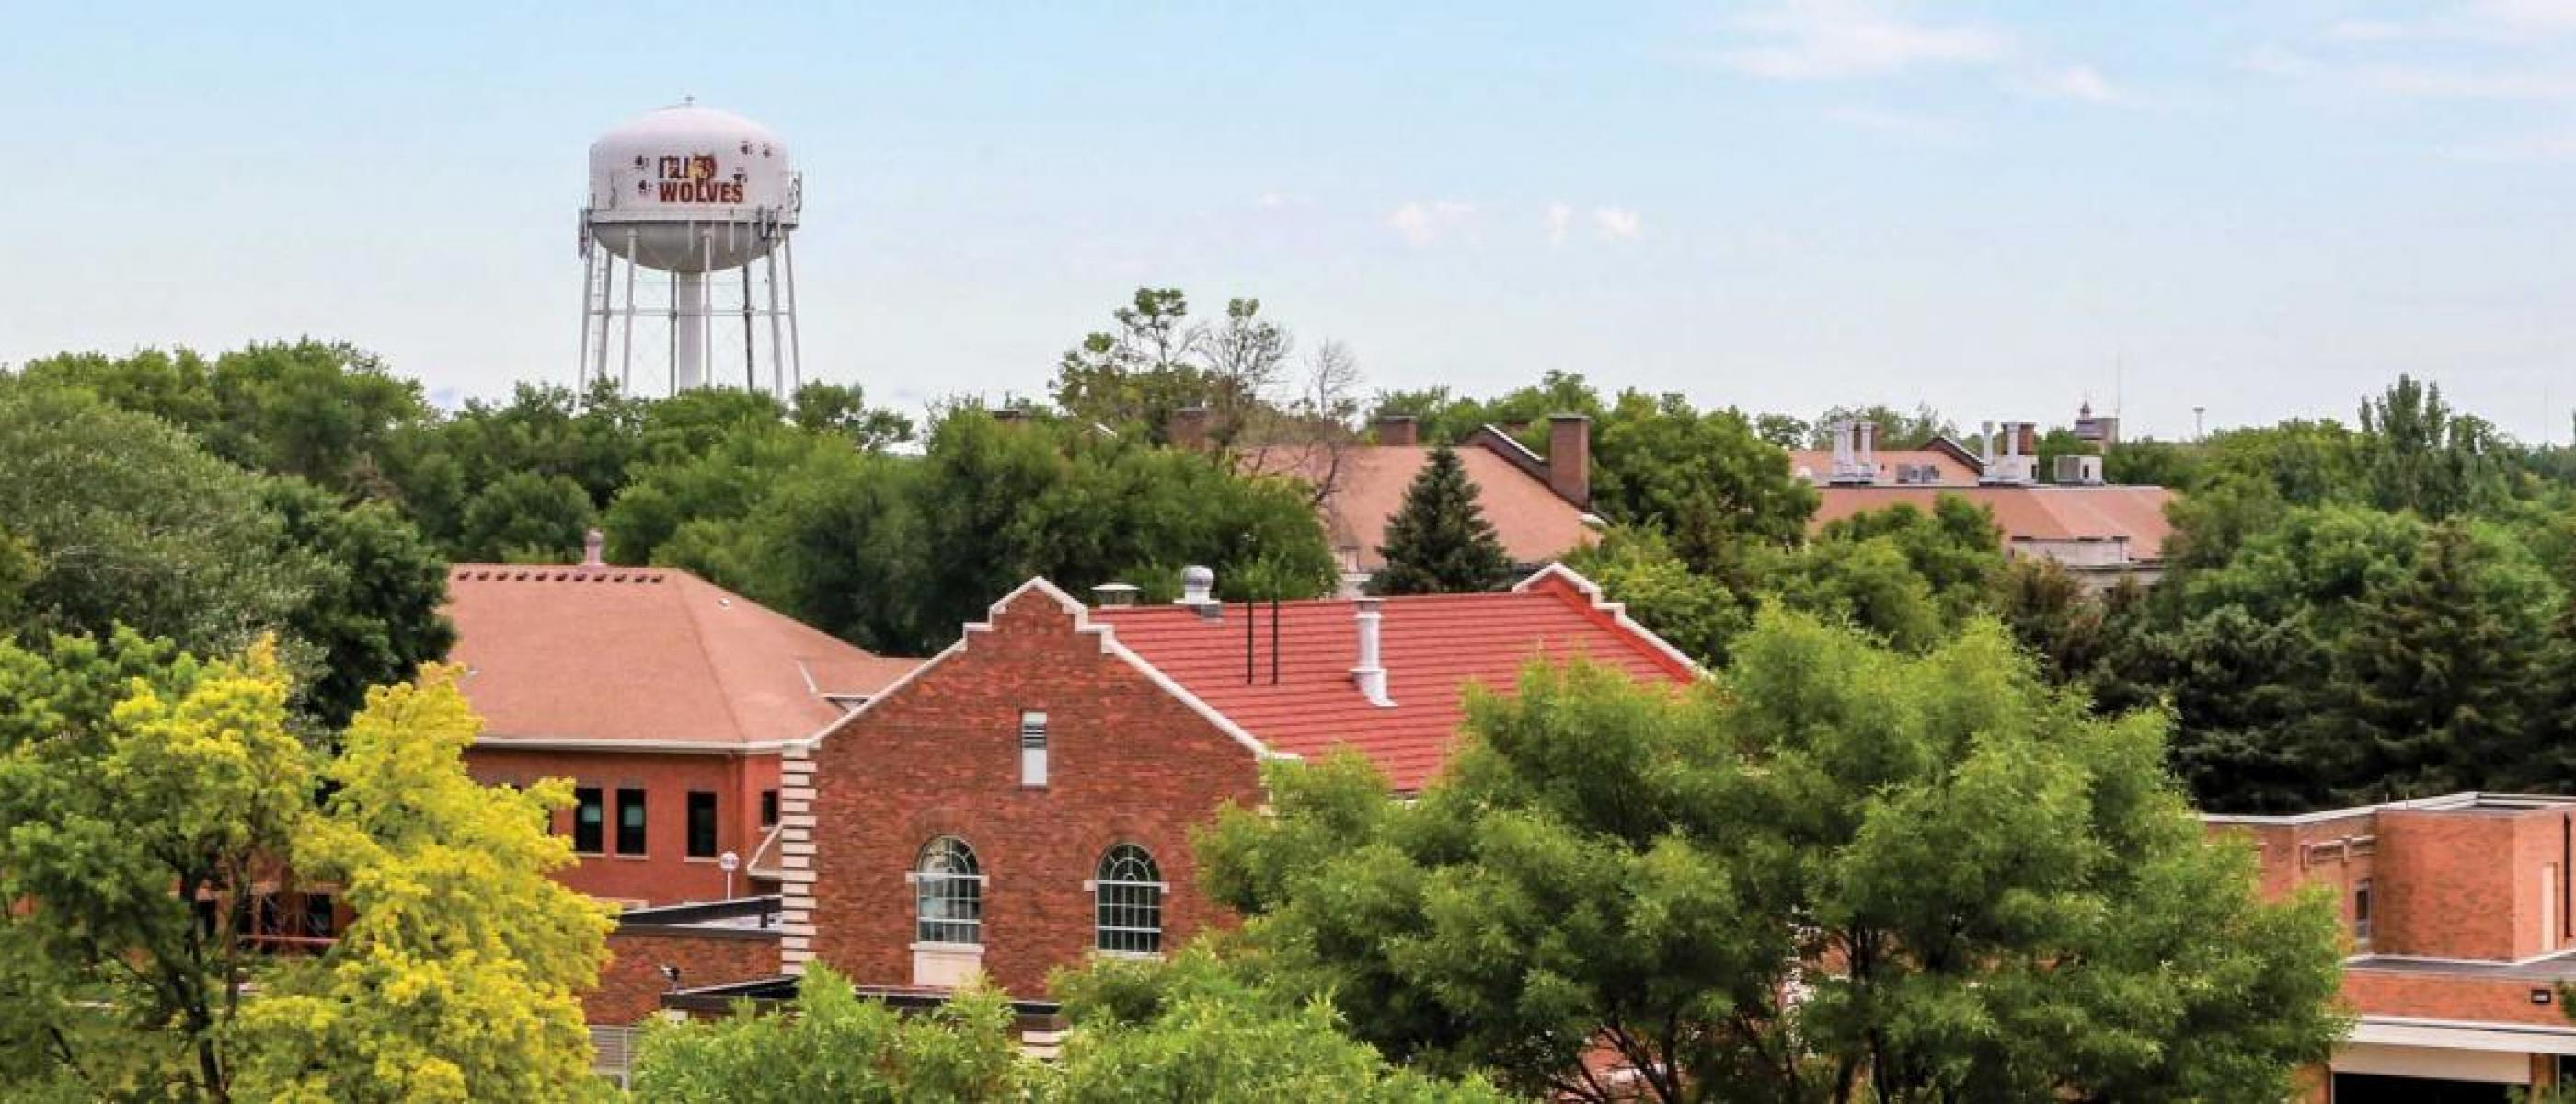 View of campus with water tower